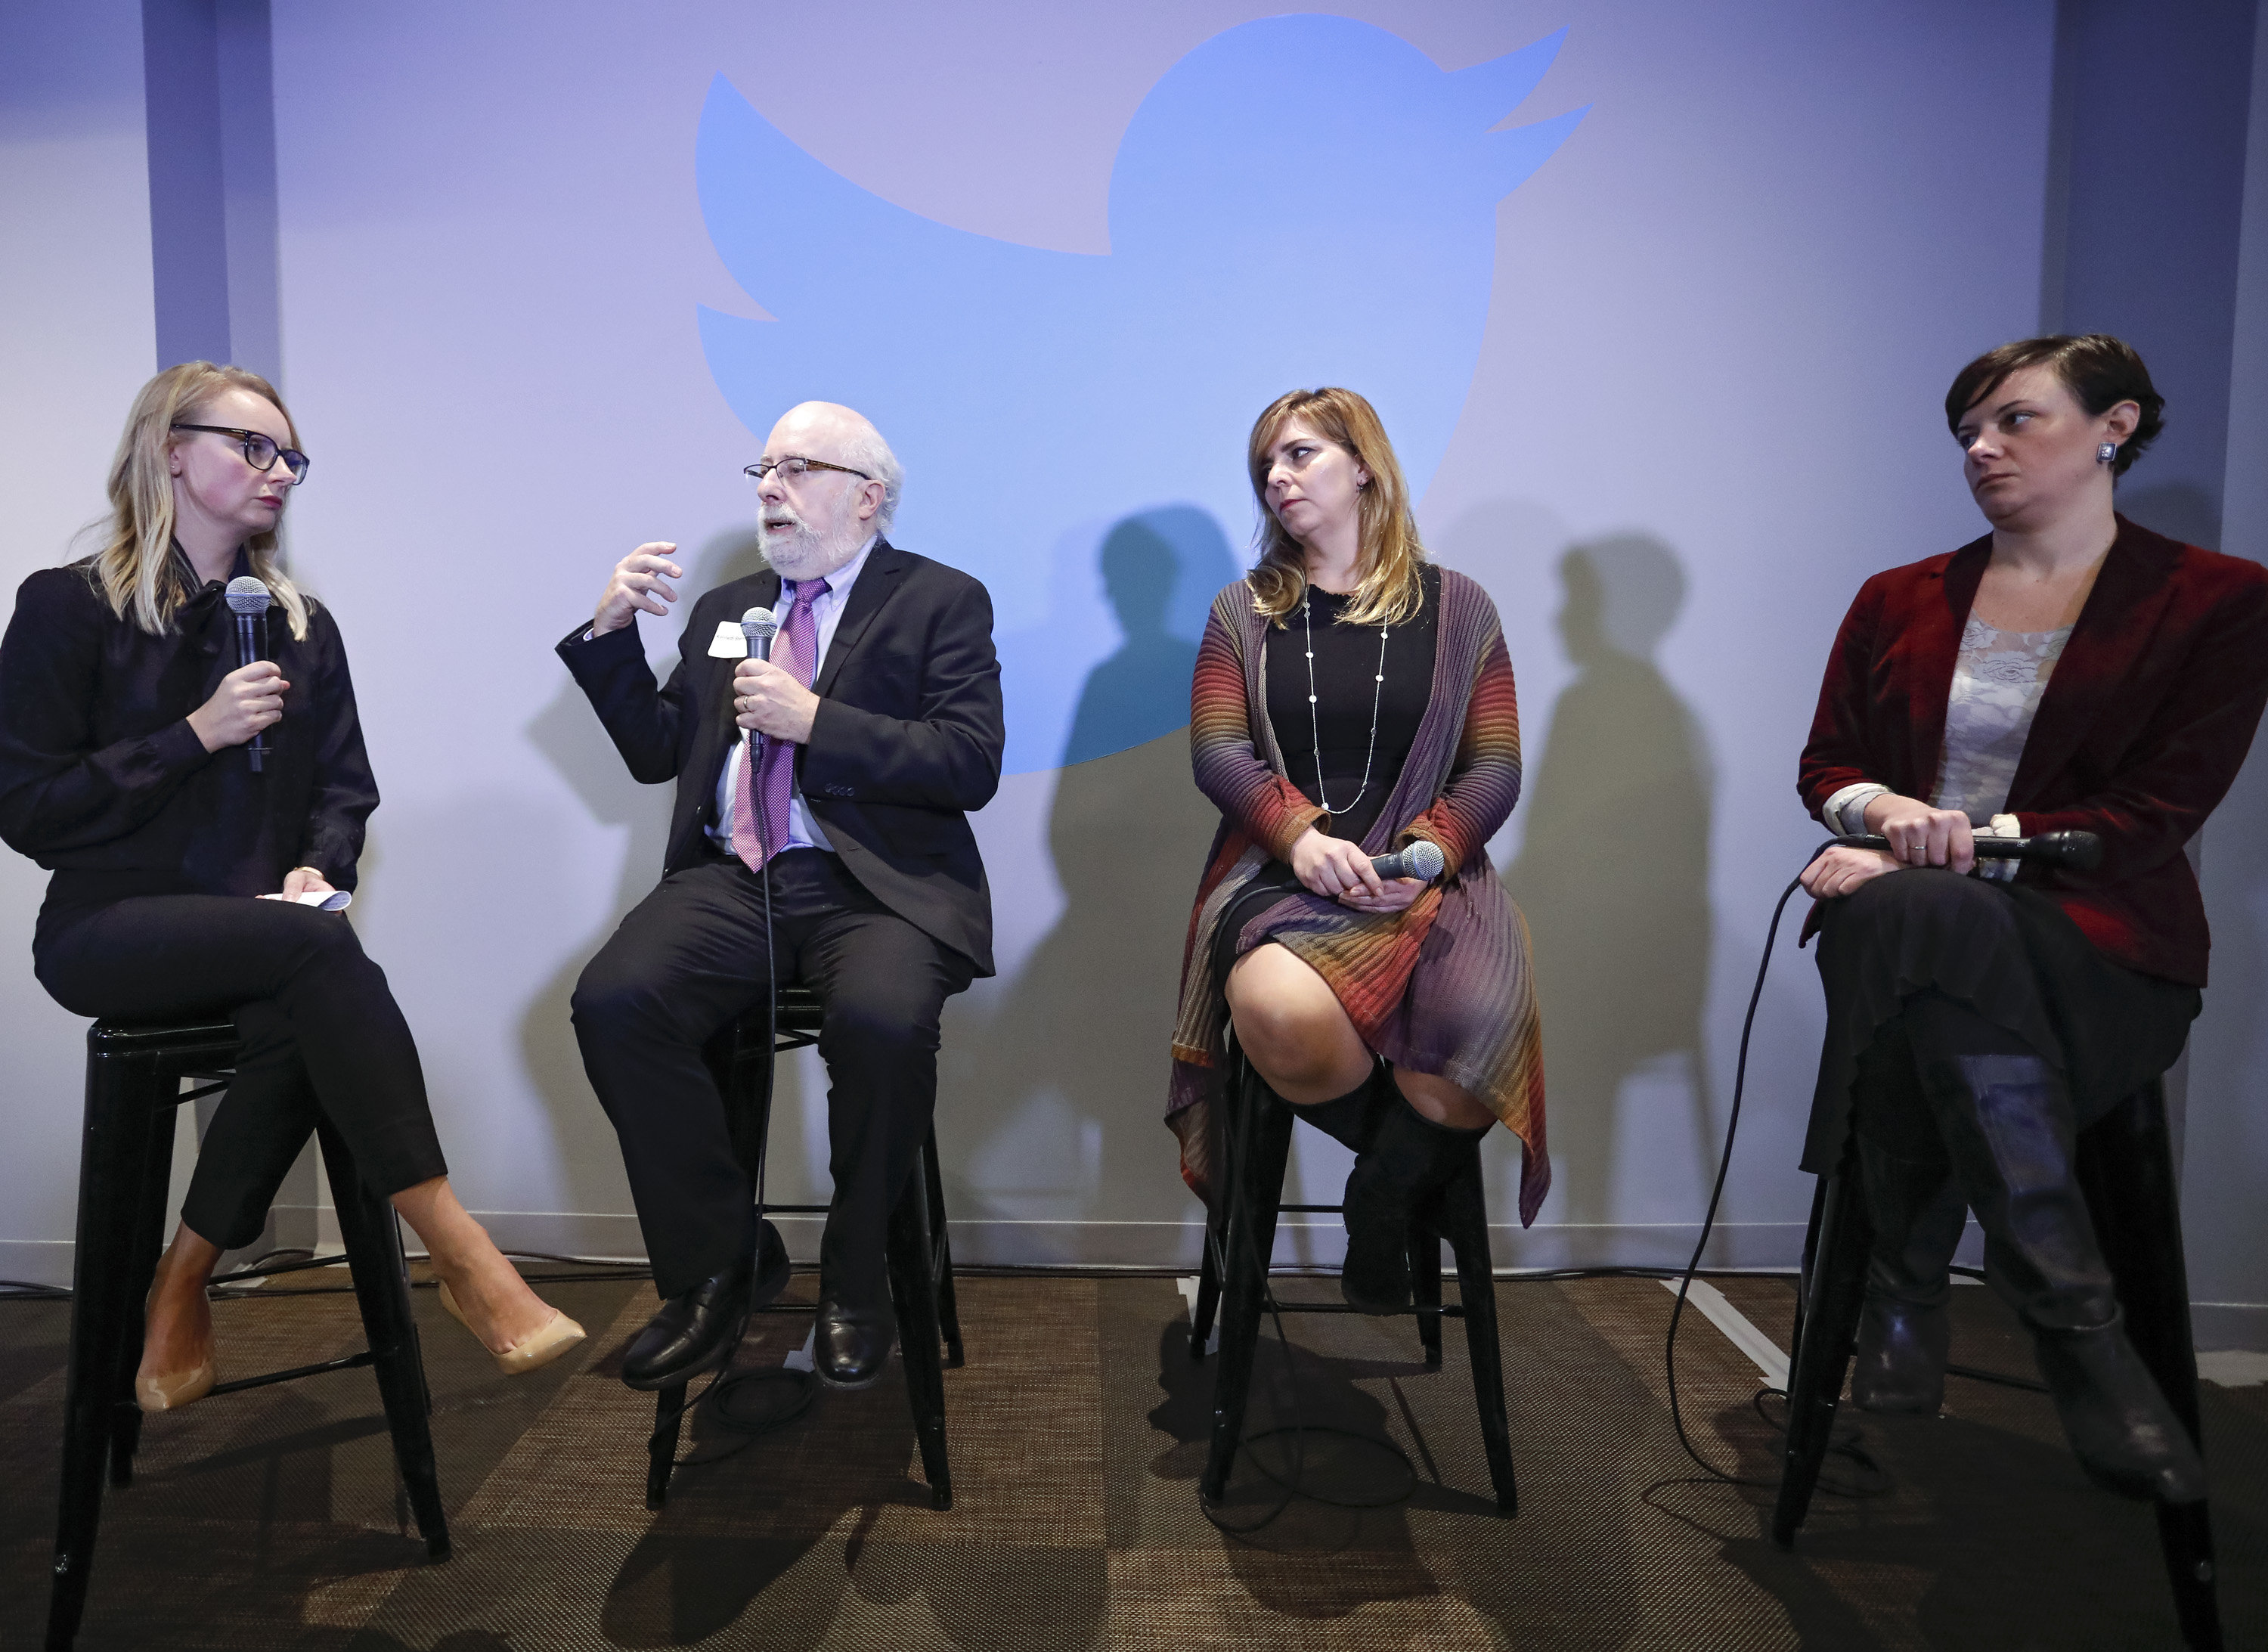 From left: Twitter's Lisa Roman, Kenneth Stern, Shannon Martinez, and Kate Klonick. (c) Shahar Azran / World Jewish Congress